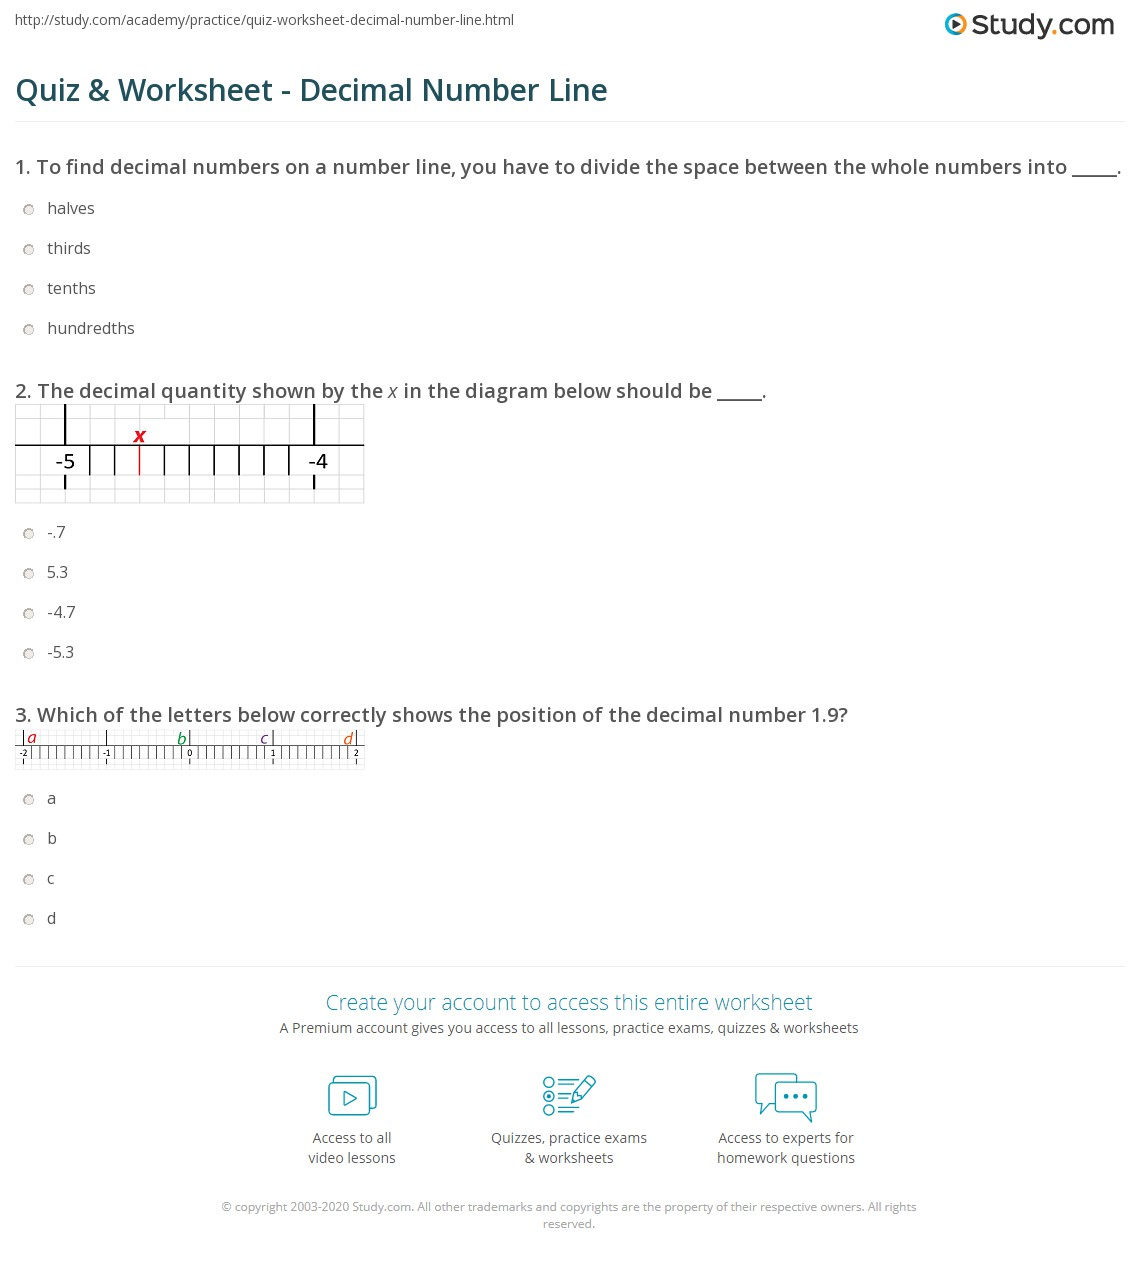 worksheet Placing Fractions On A Number Line Worksheet quiz worksheet decimal number line study com print placing finding decimals on a worksheet